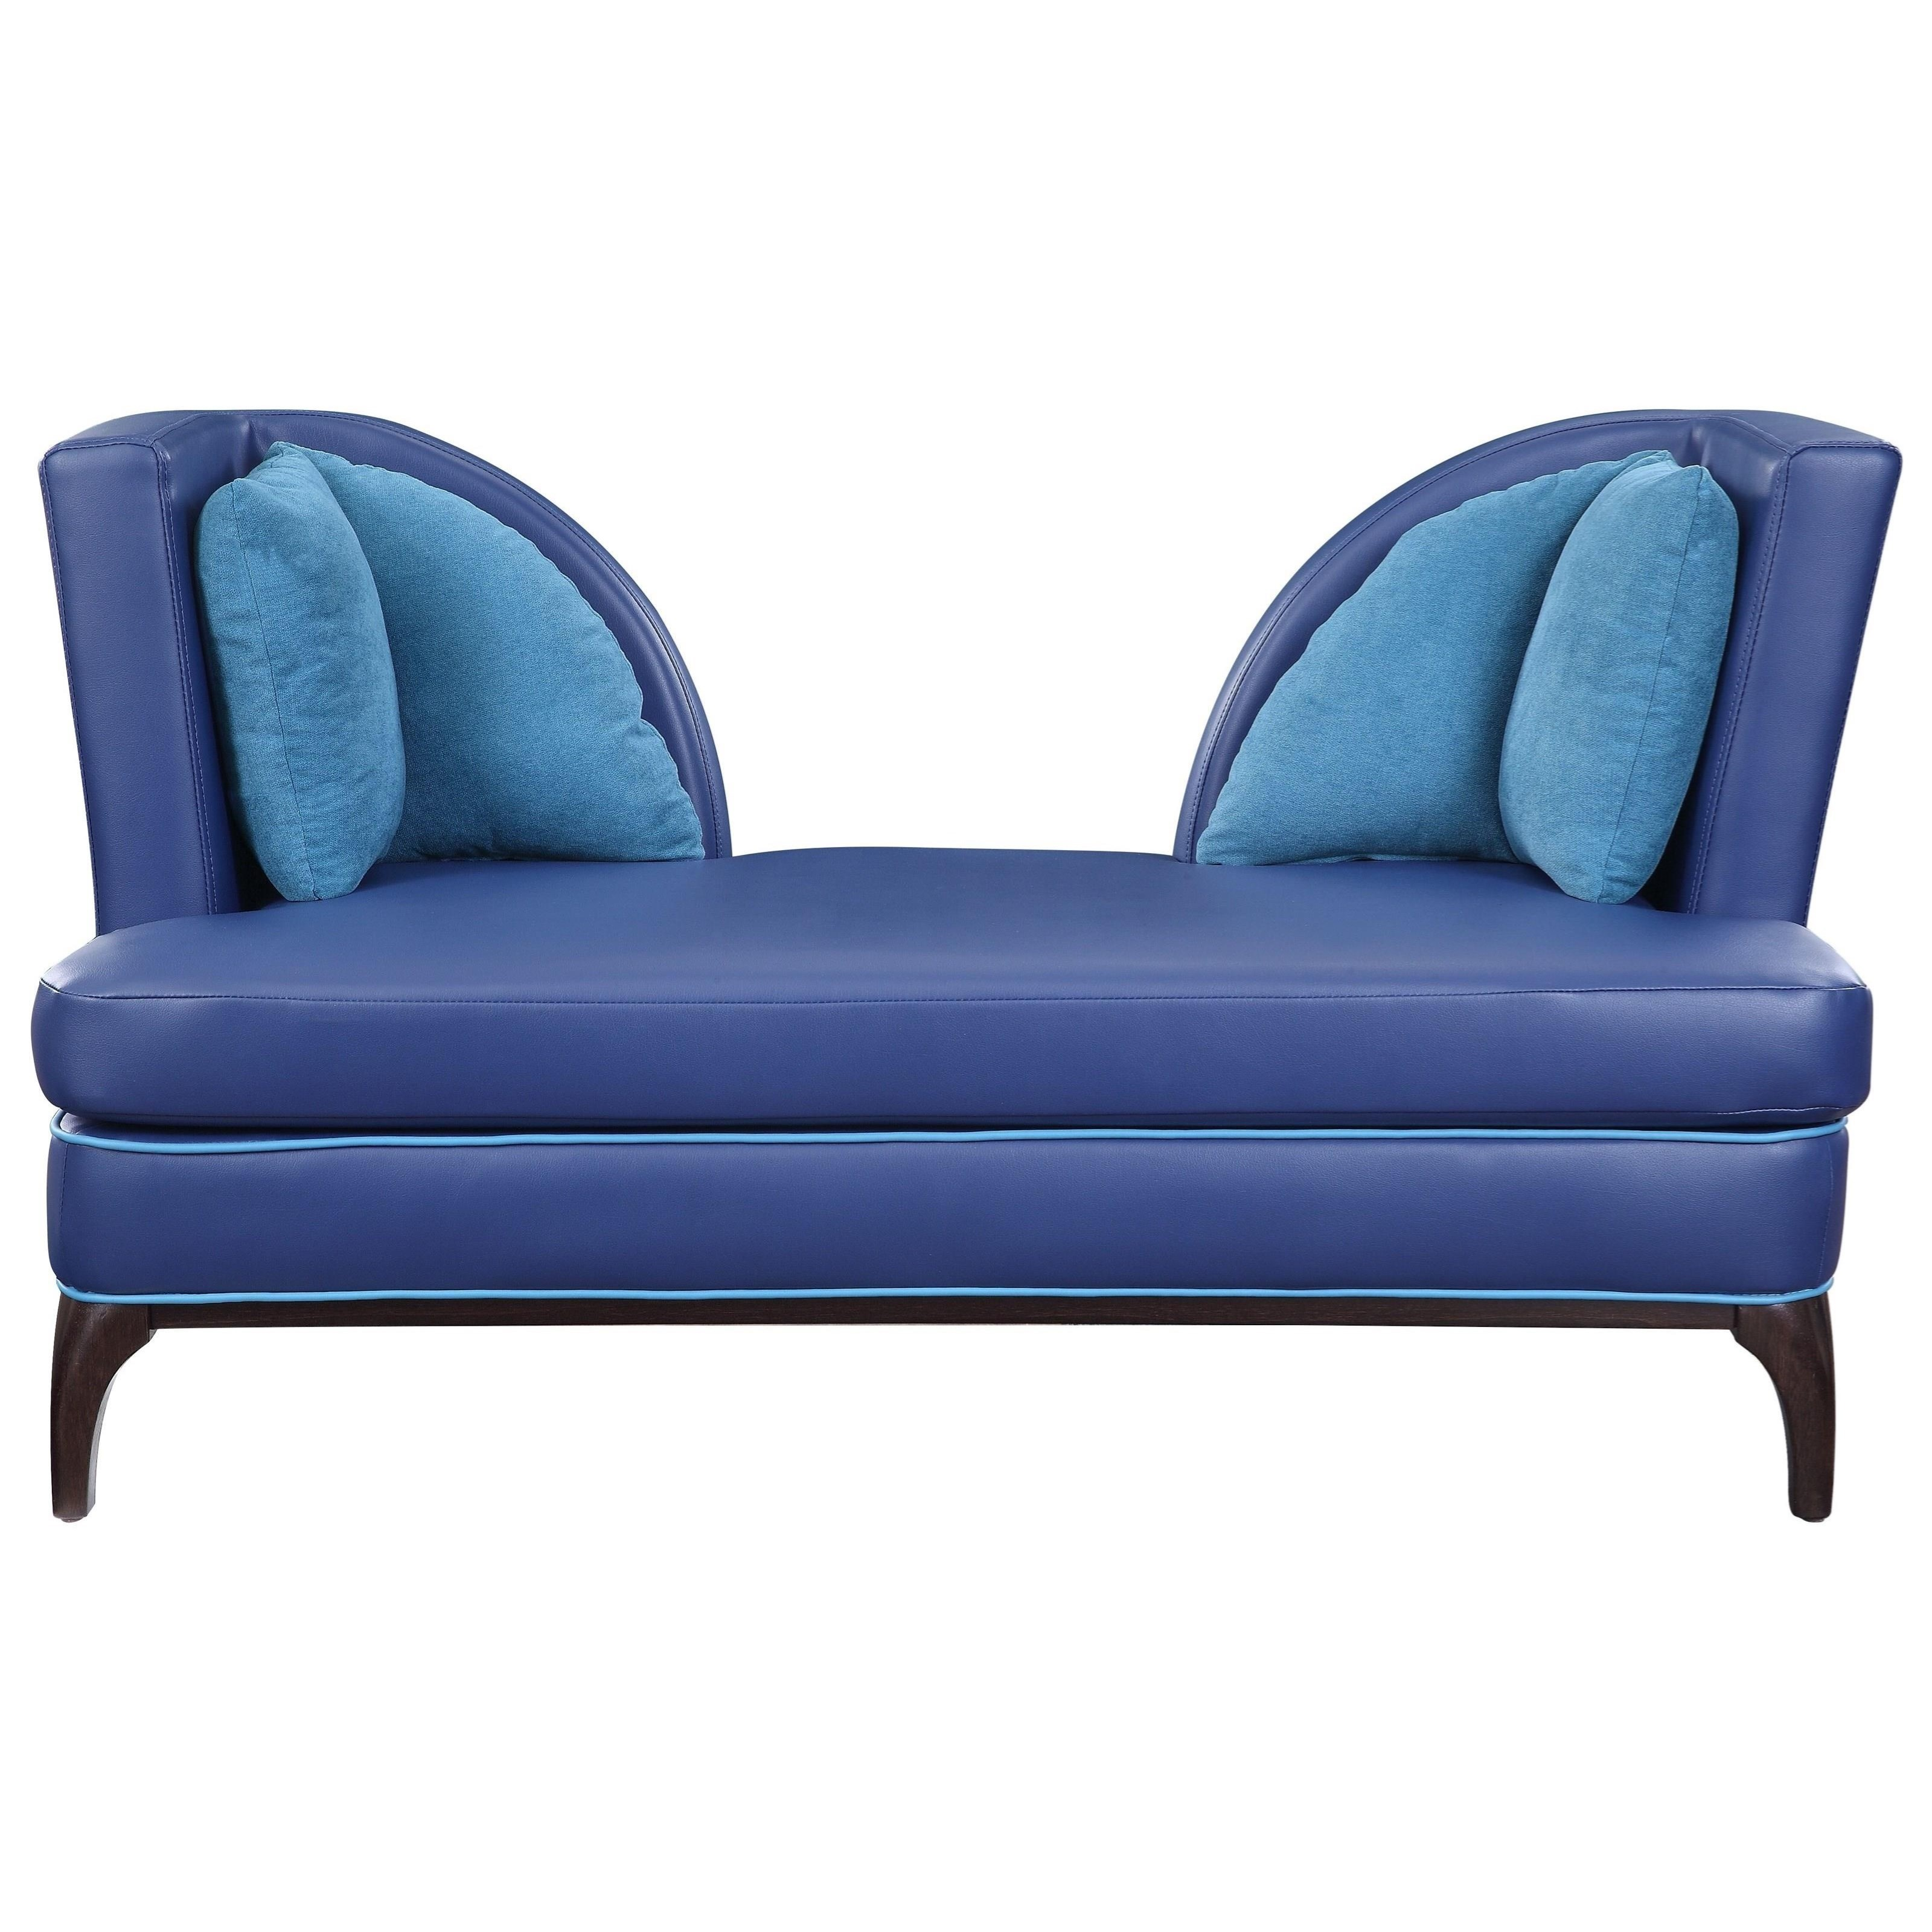 Albion Settee by Acme Furniture at Carolina Direct